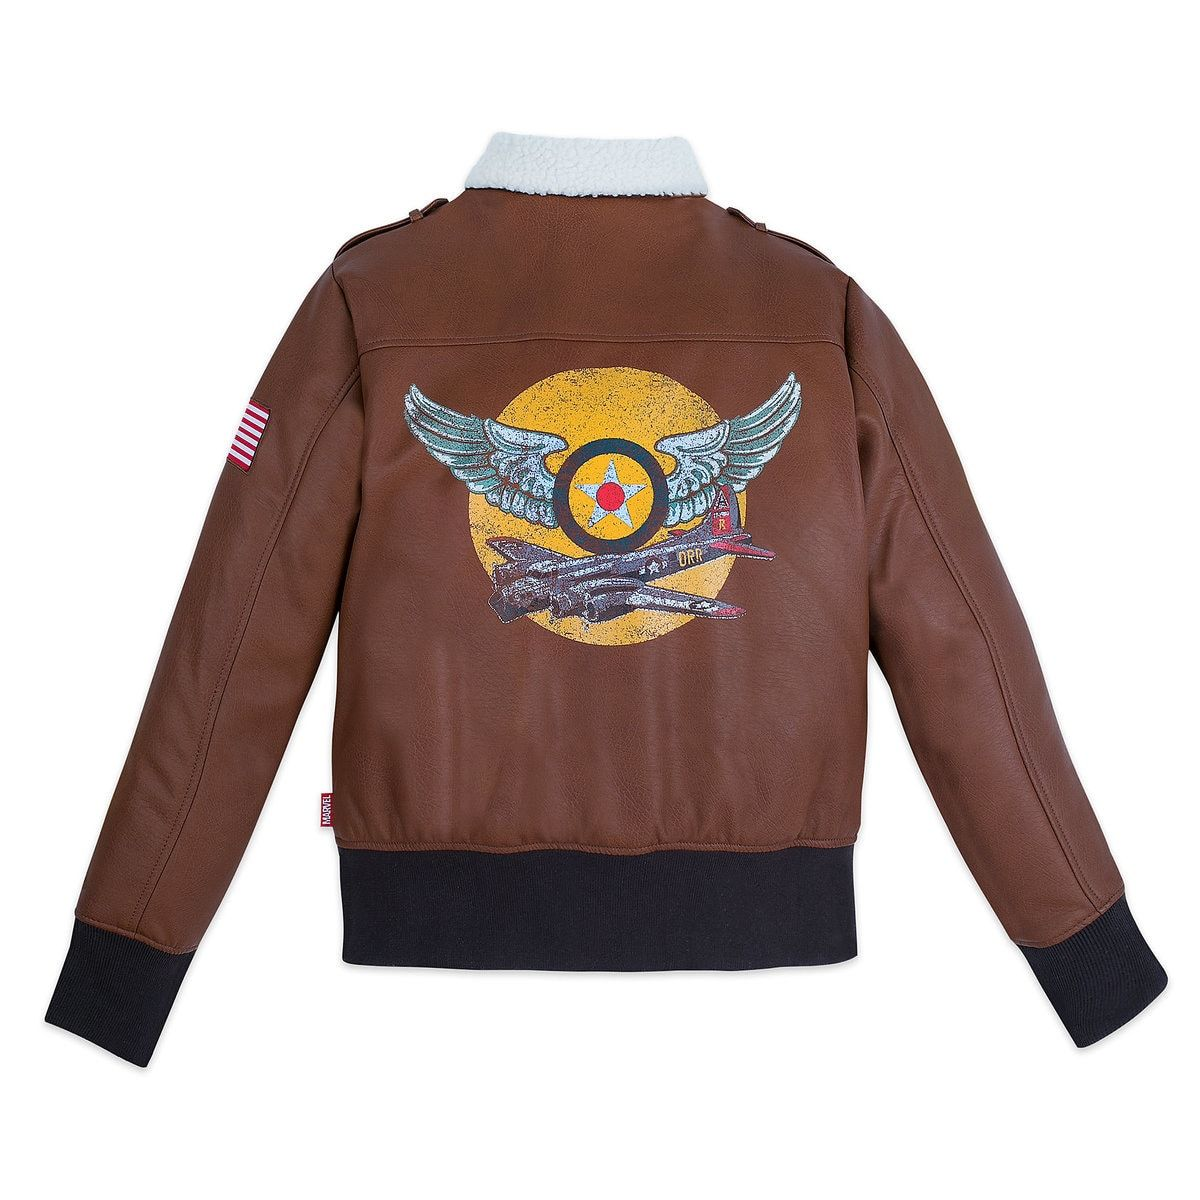 Marvel S Captain Marvel Bomber Jacket For Women Shopdisney Jackets For Women Bomber Jacket Disney Outfits [ 1200 x 1200 Pixel ]